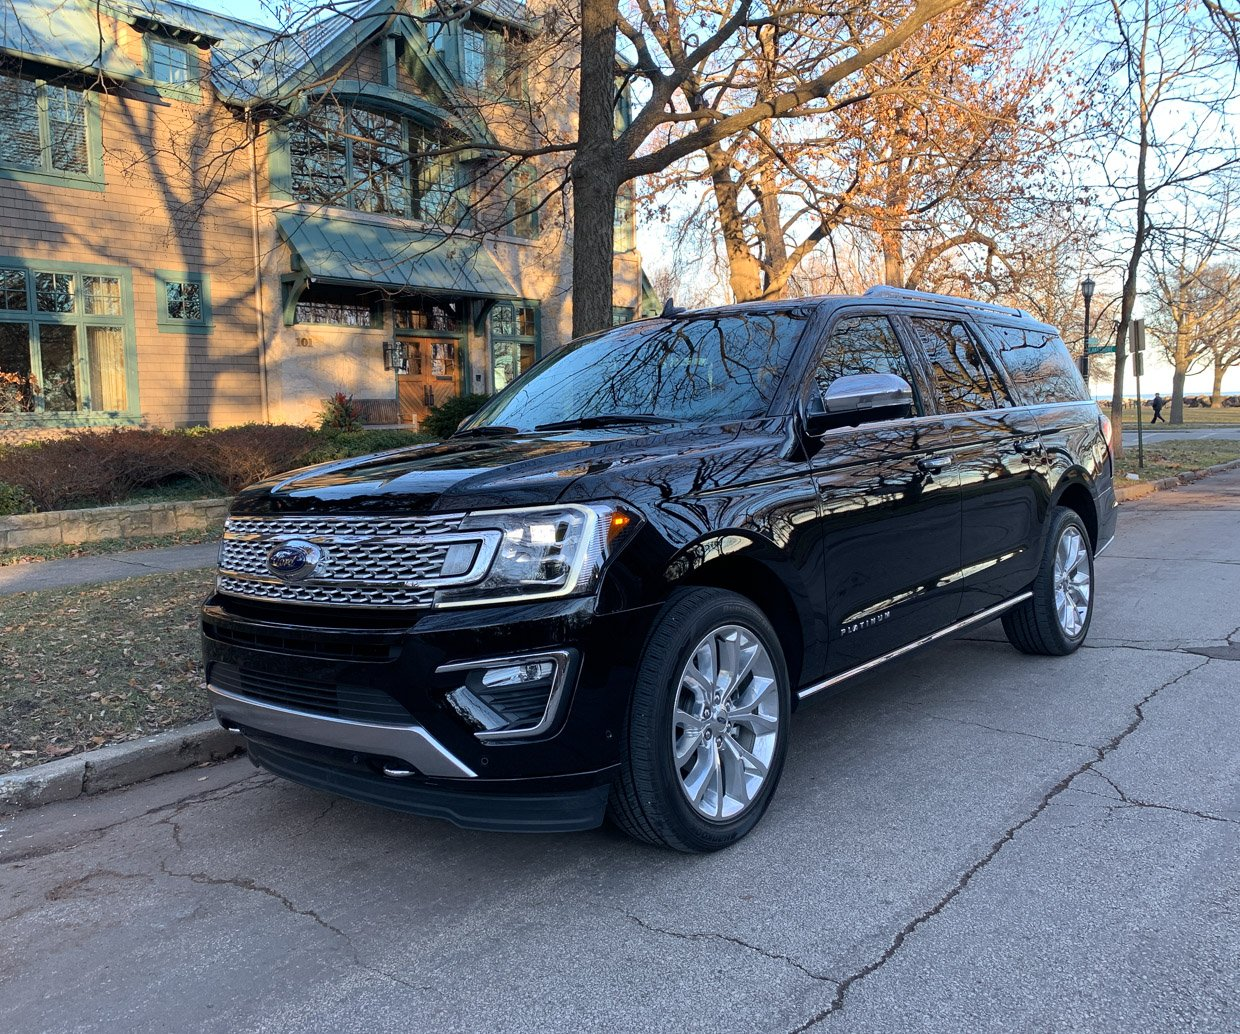 Ford Expediton: 2018 Ford Expedition Max Platinum Review: Supersize SUV